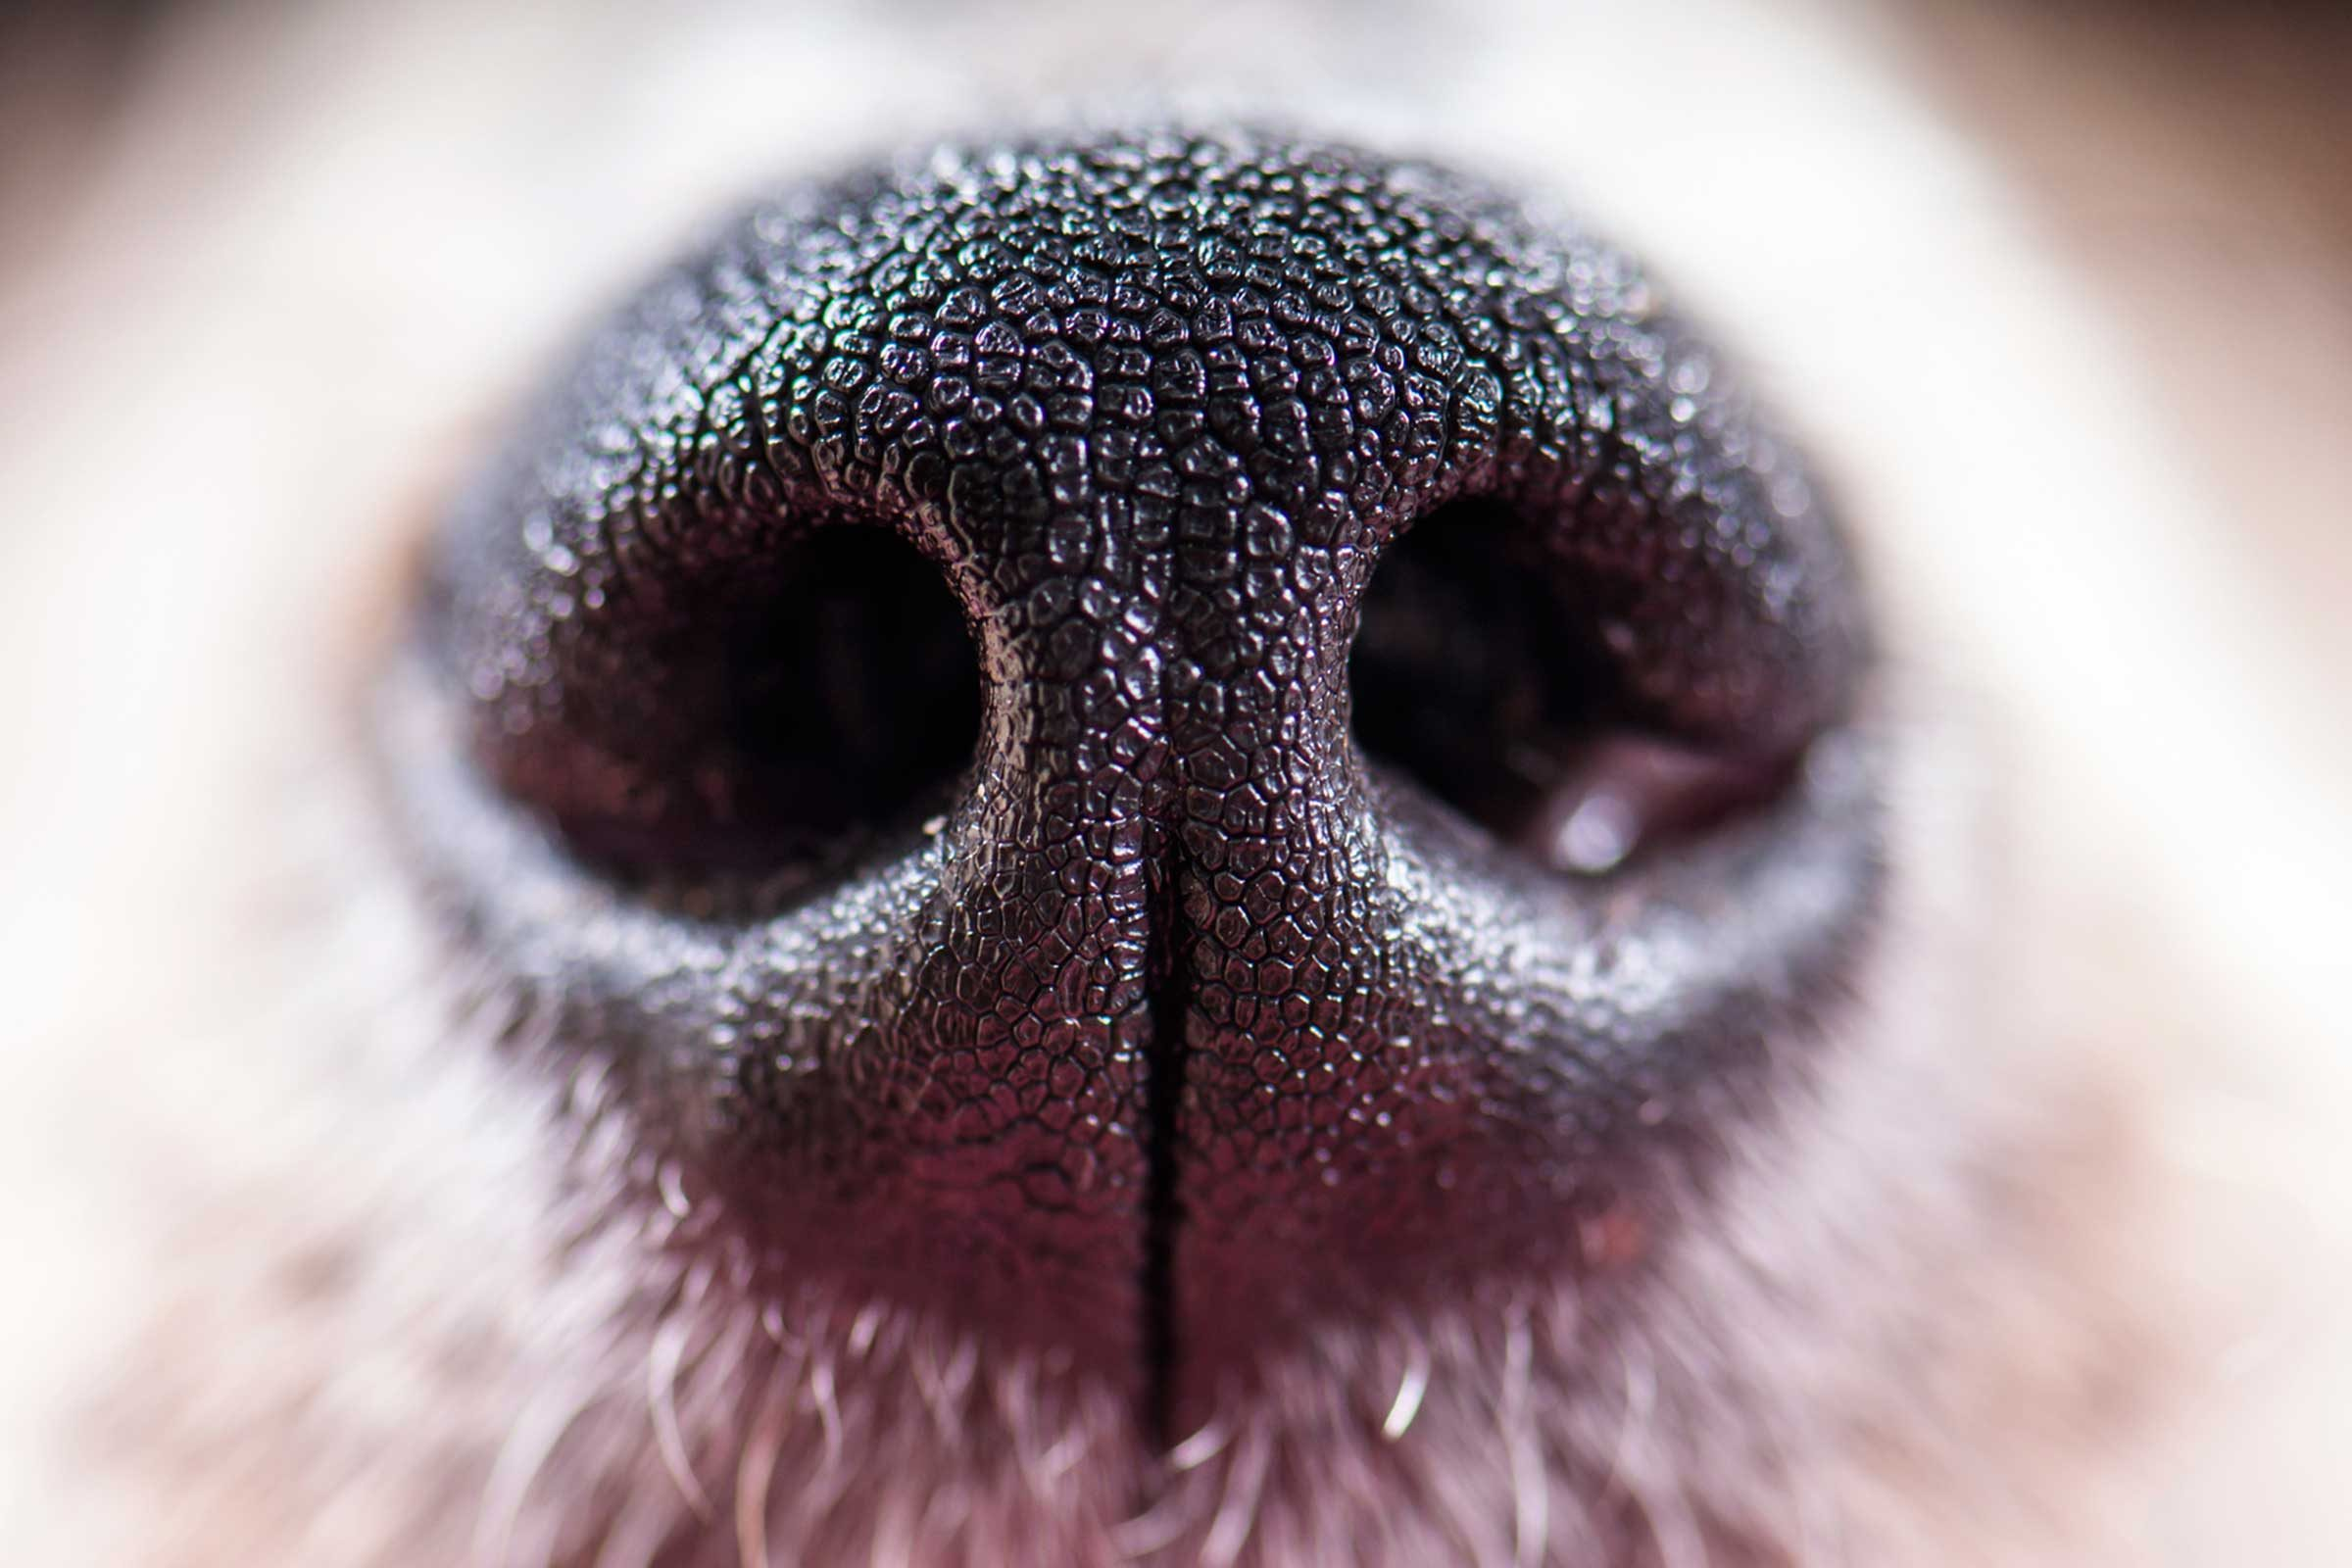 No two dog noses are the same.